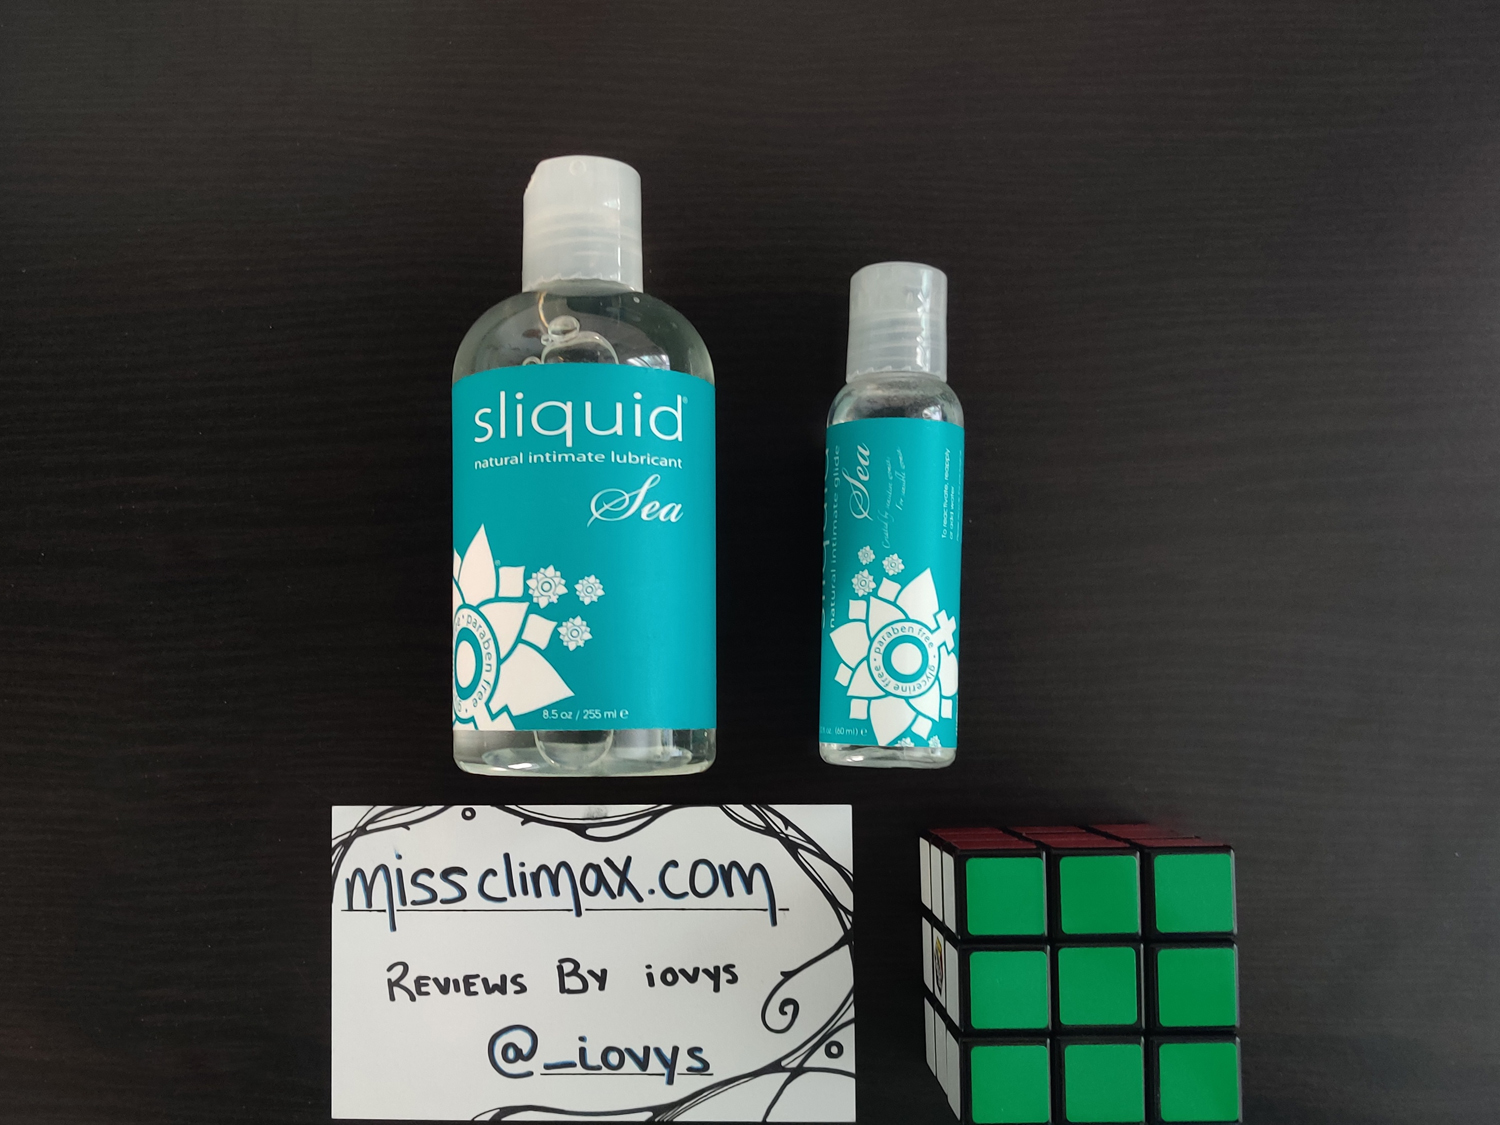 Sliquid Sea next to my Rubik's cube & card for size comparison